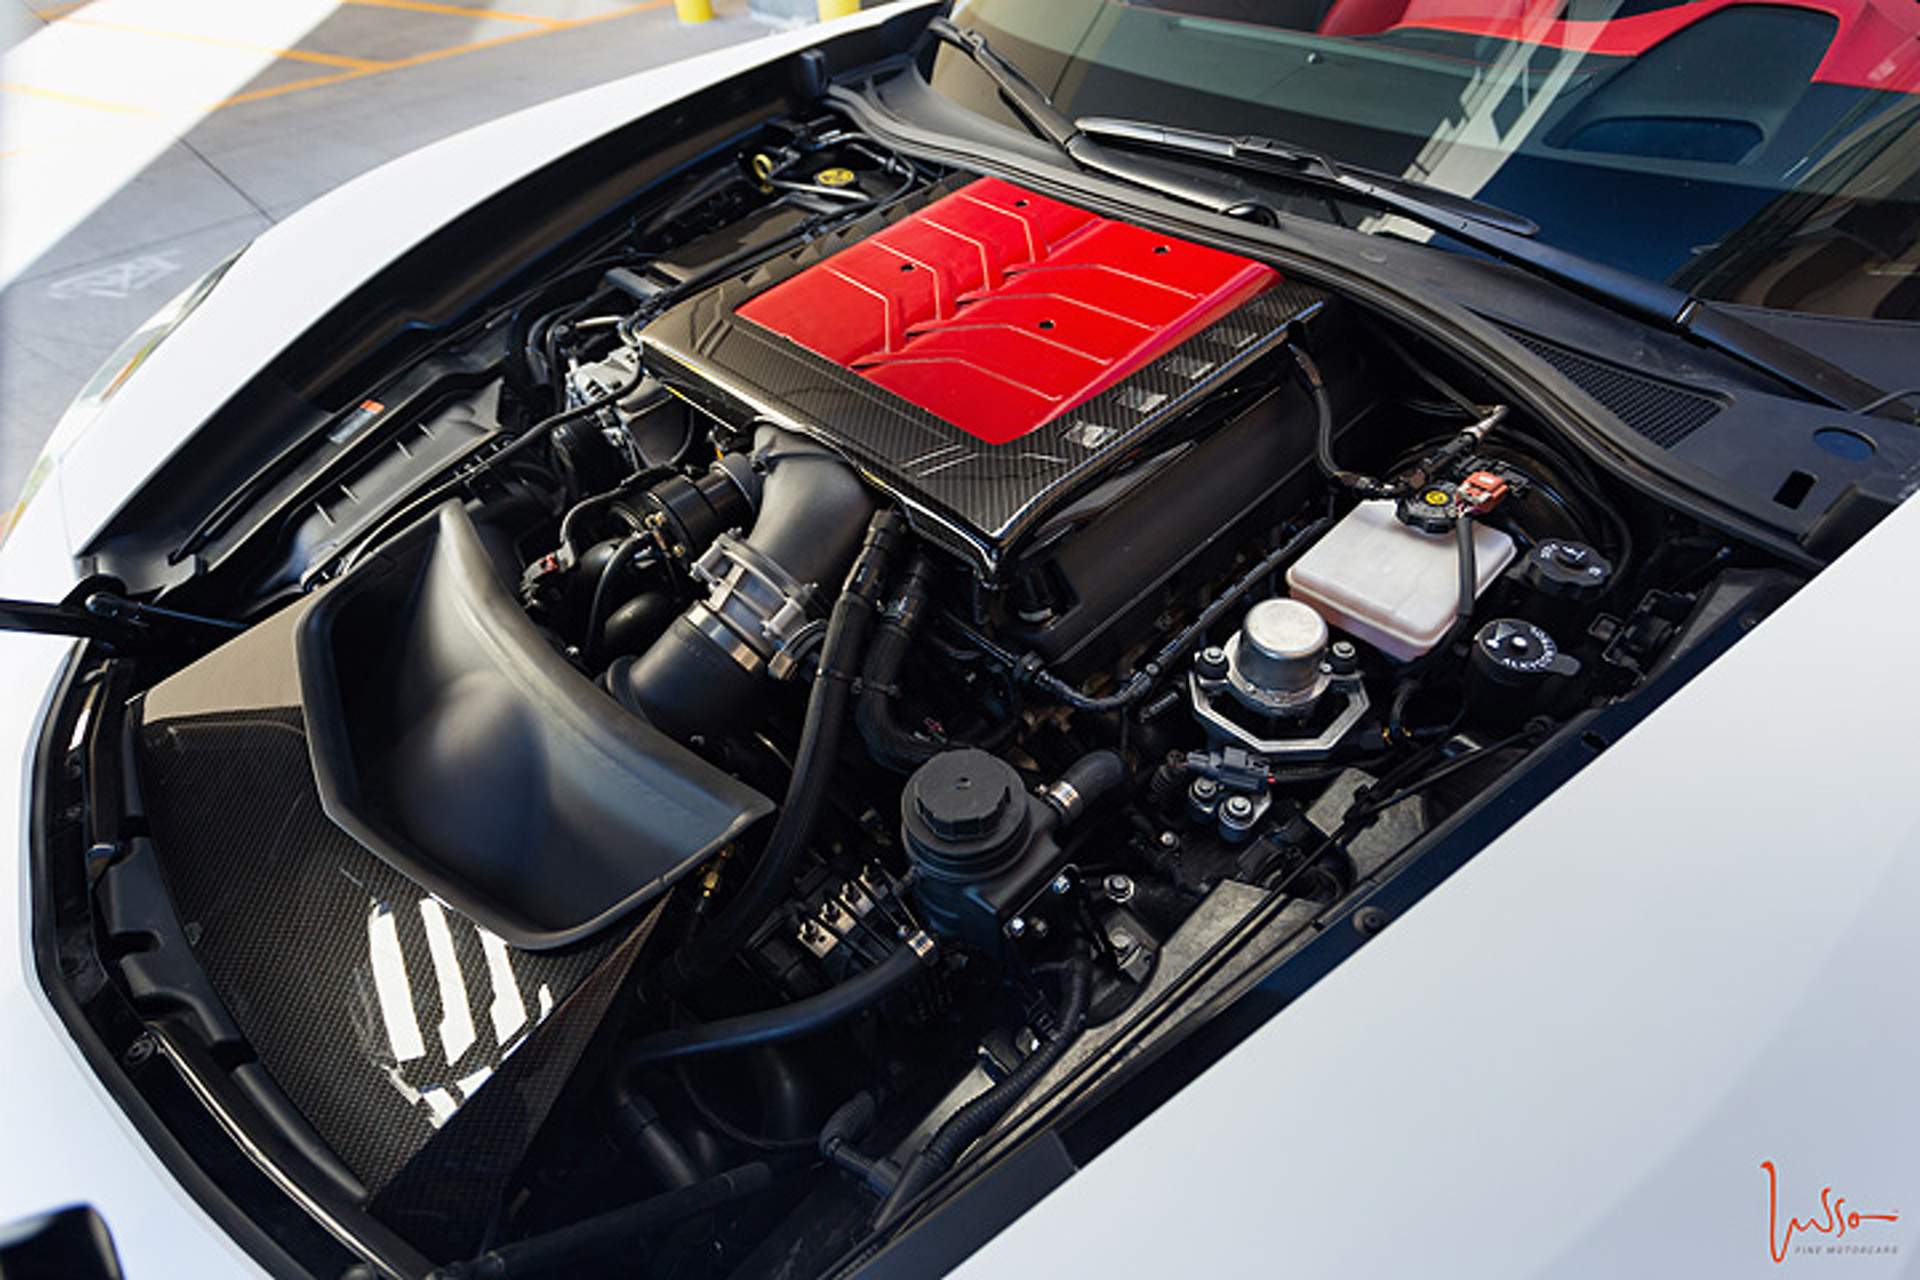 1,000HP Lurks Under the Hood of This Mean Corvette Z06